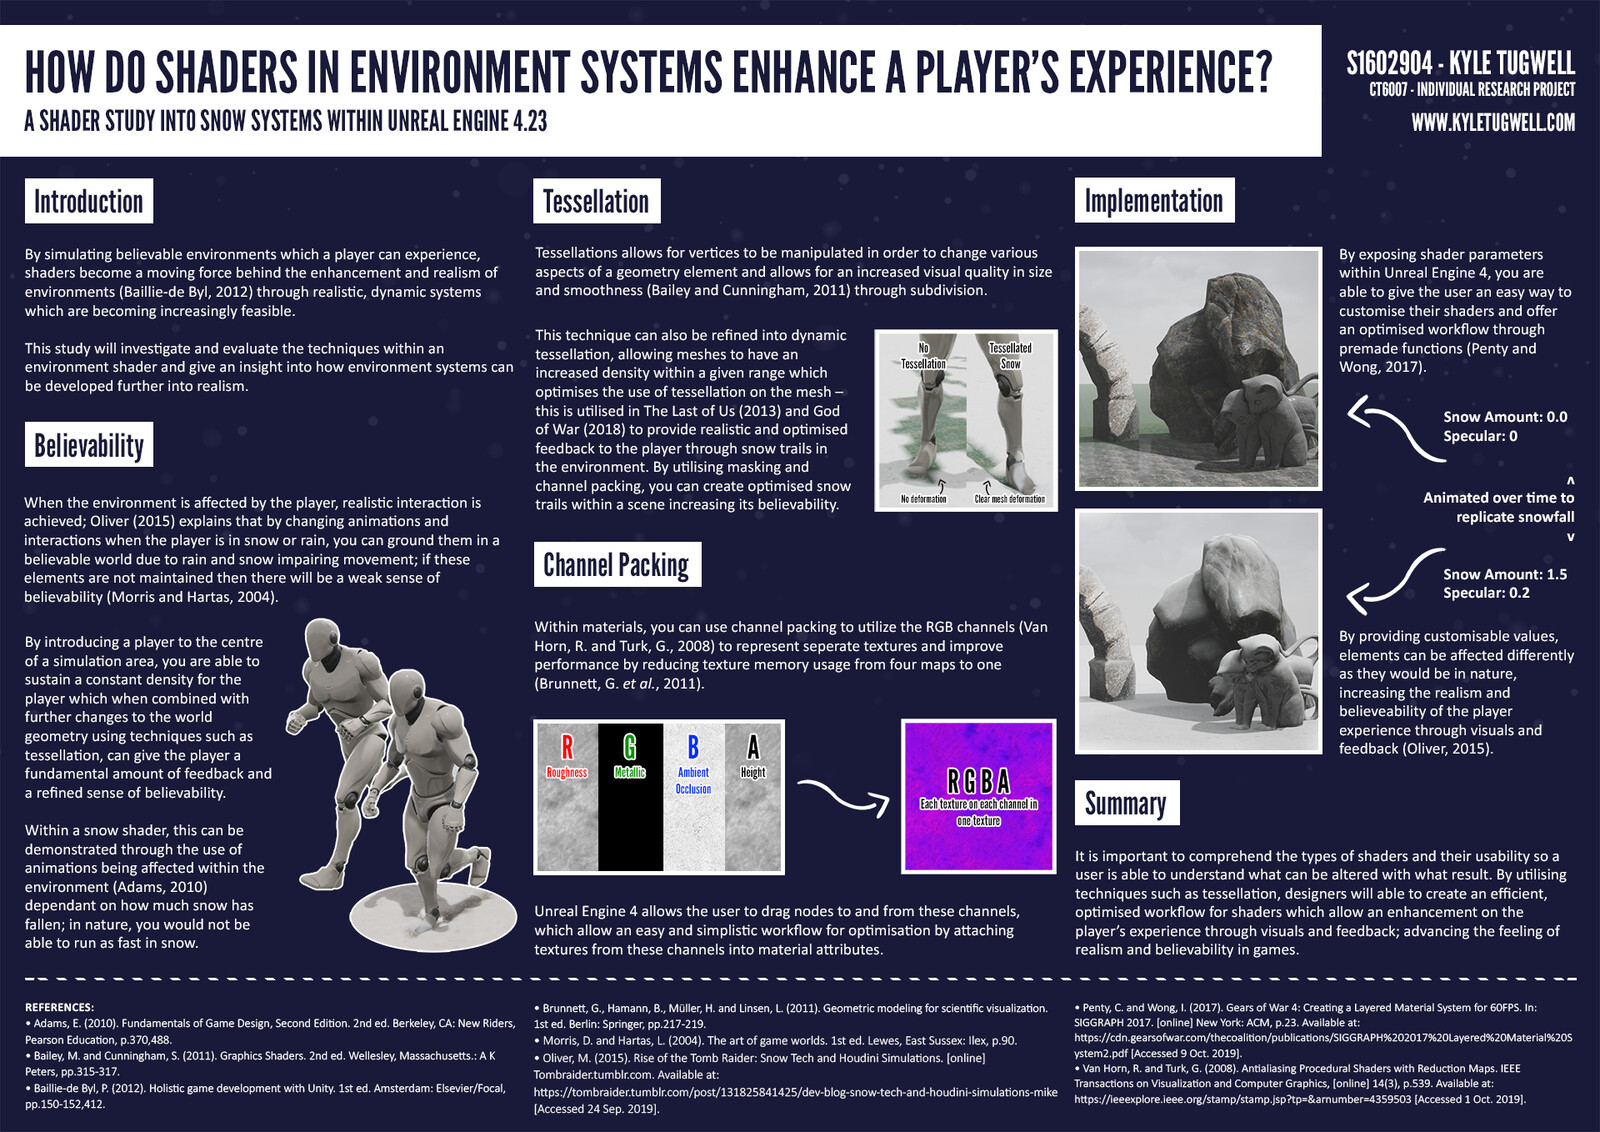 This project aims to investigate how shaders in environment systems affect the players experience; completed through Unreal Engine 4's Material system.